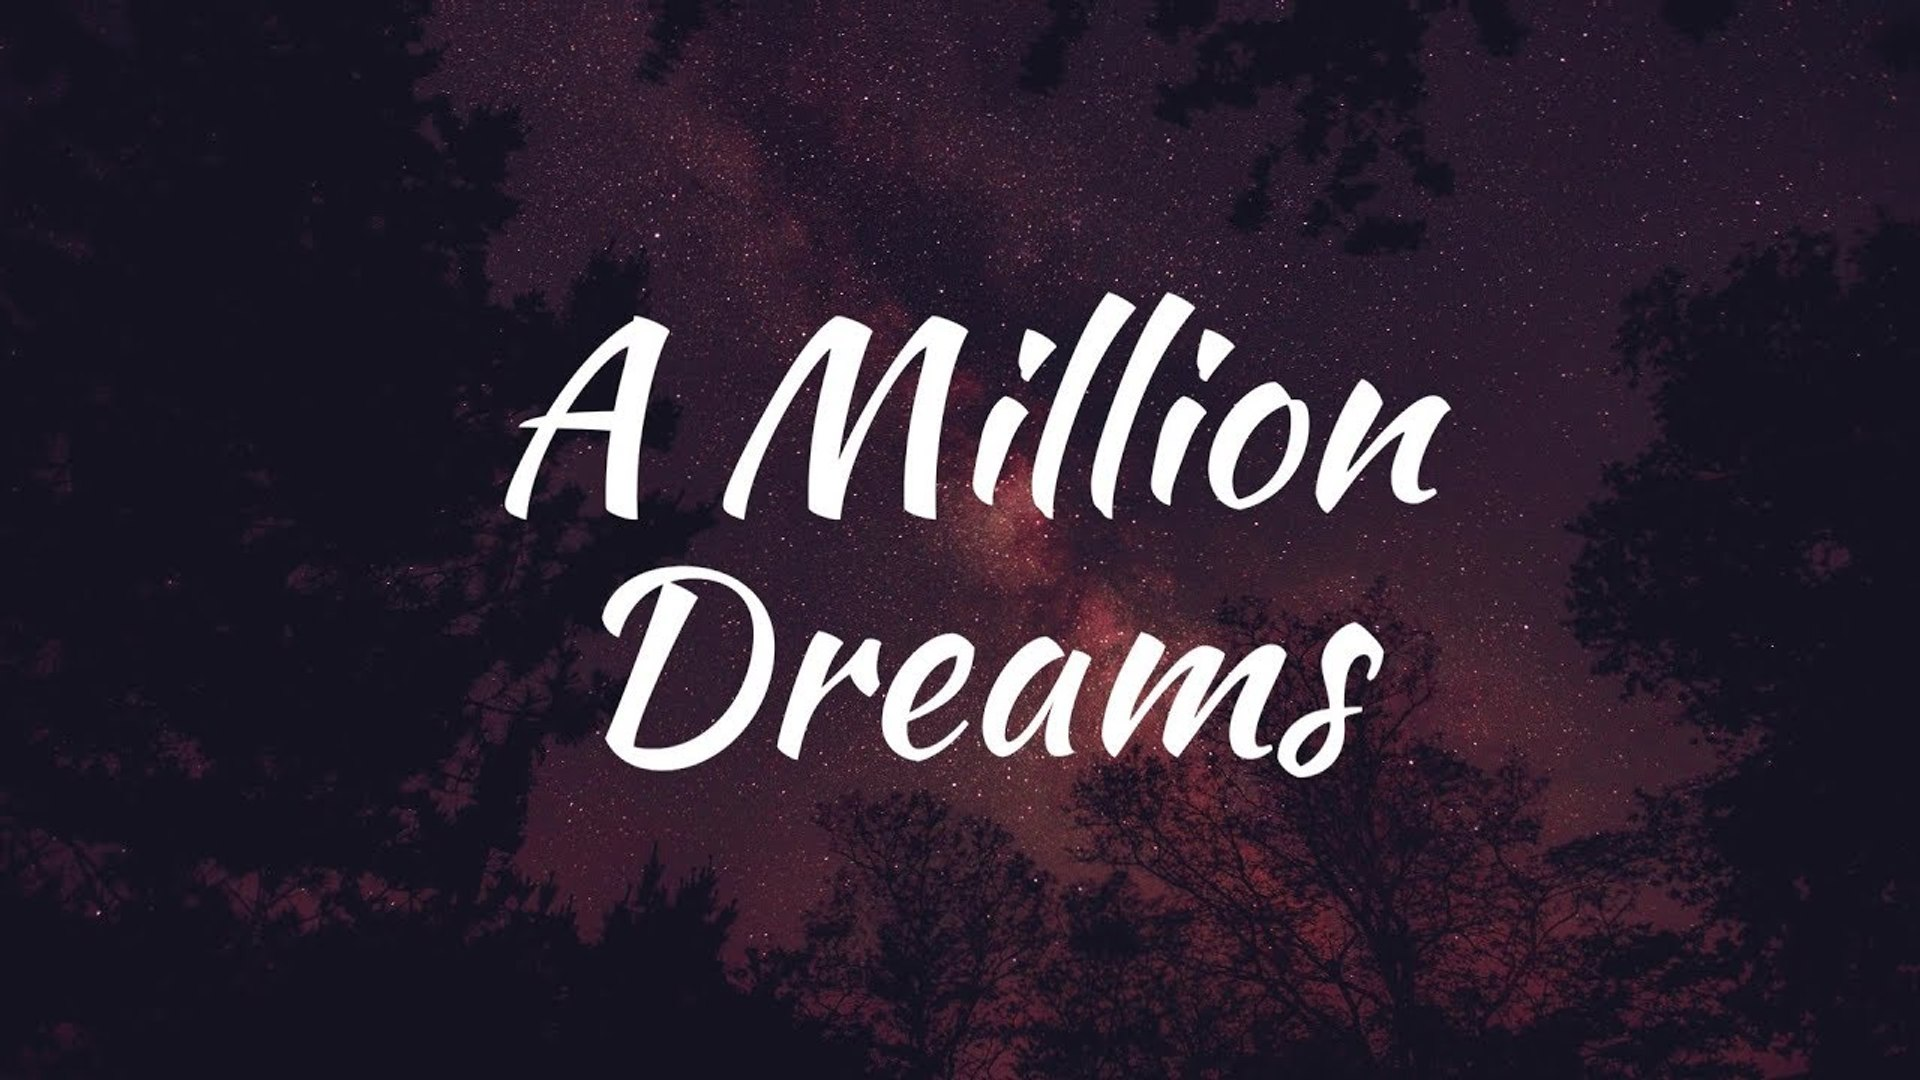 photograph about A Million Dreams Lyrics Printable titled A Million Desires (Lyrics) Versus \u201cThe Major Showman\u201d